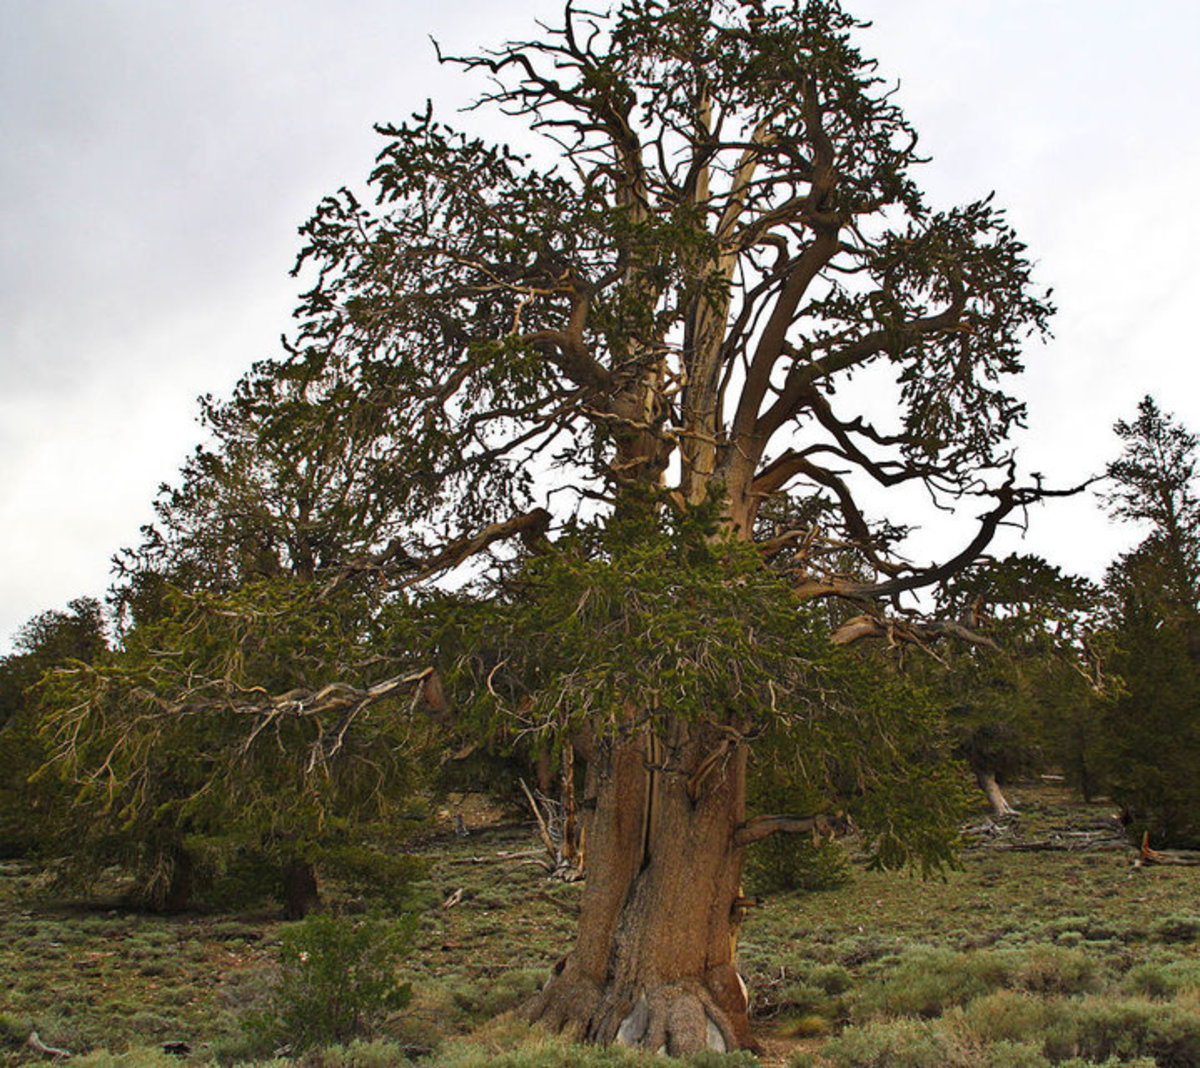 Bristlecone Pine Tree in Inyo National Forest, California